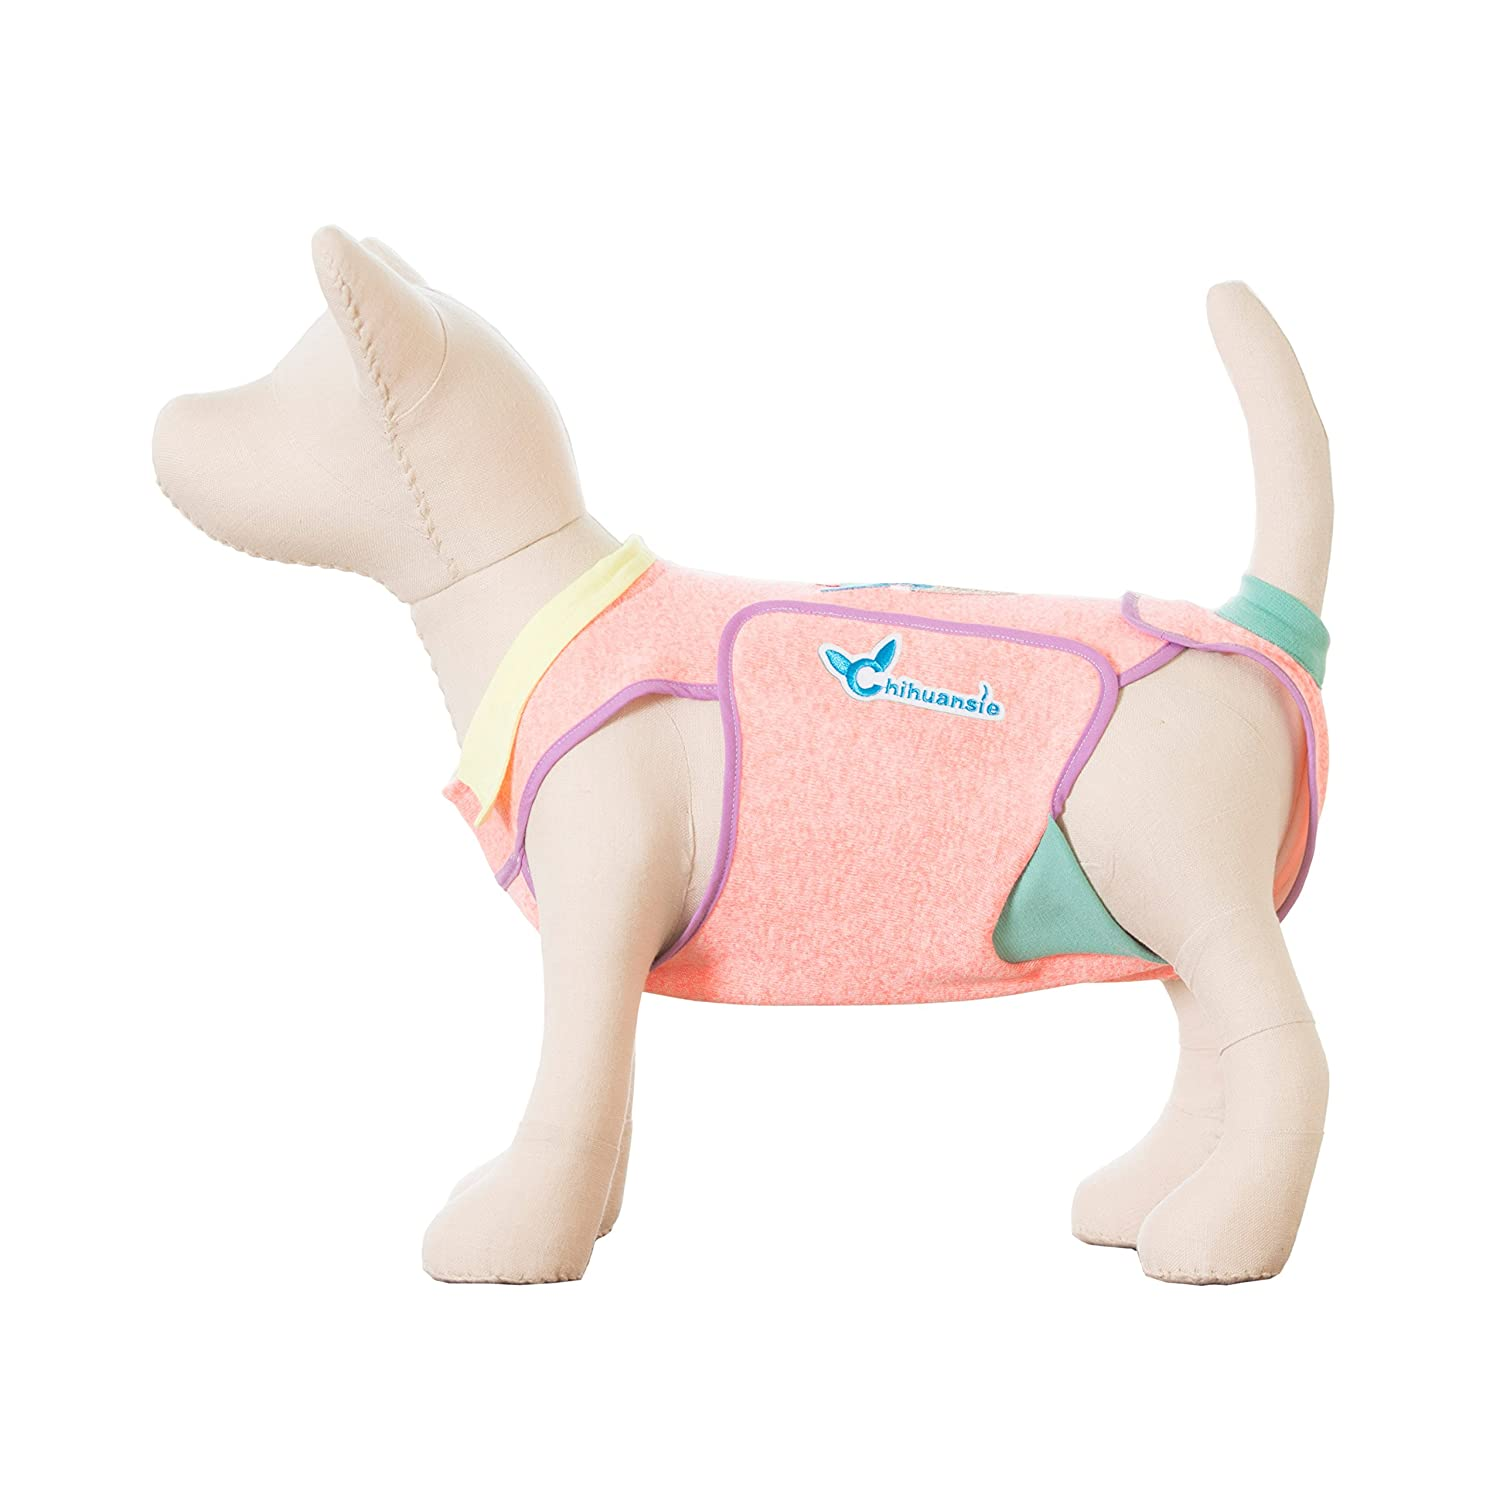 Chihuansie BARK DECO Size X-SMALL Luxury Full-Body Escape Proof Onesie for  Small Dog Designed to Hygienically Absorb & Contain Dog Urine: Amazon.ca:  Pet ...